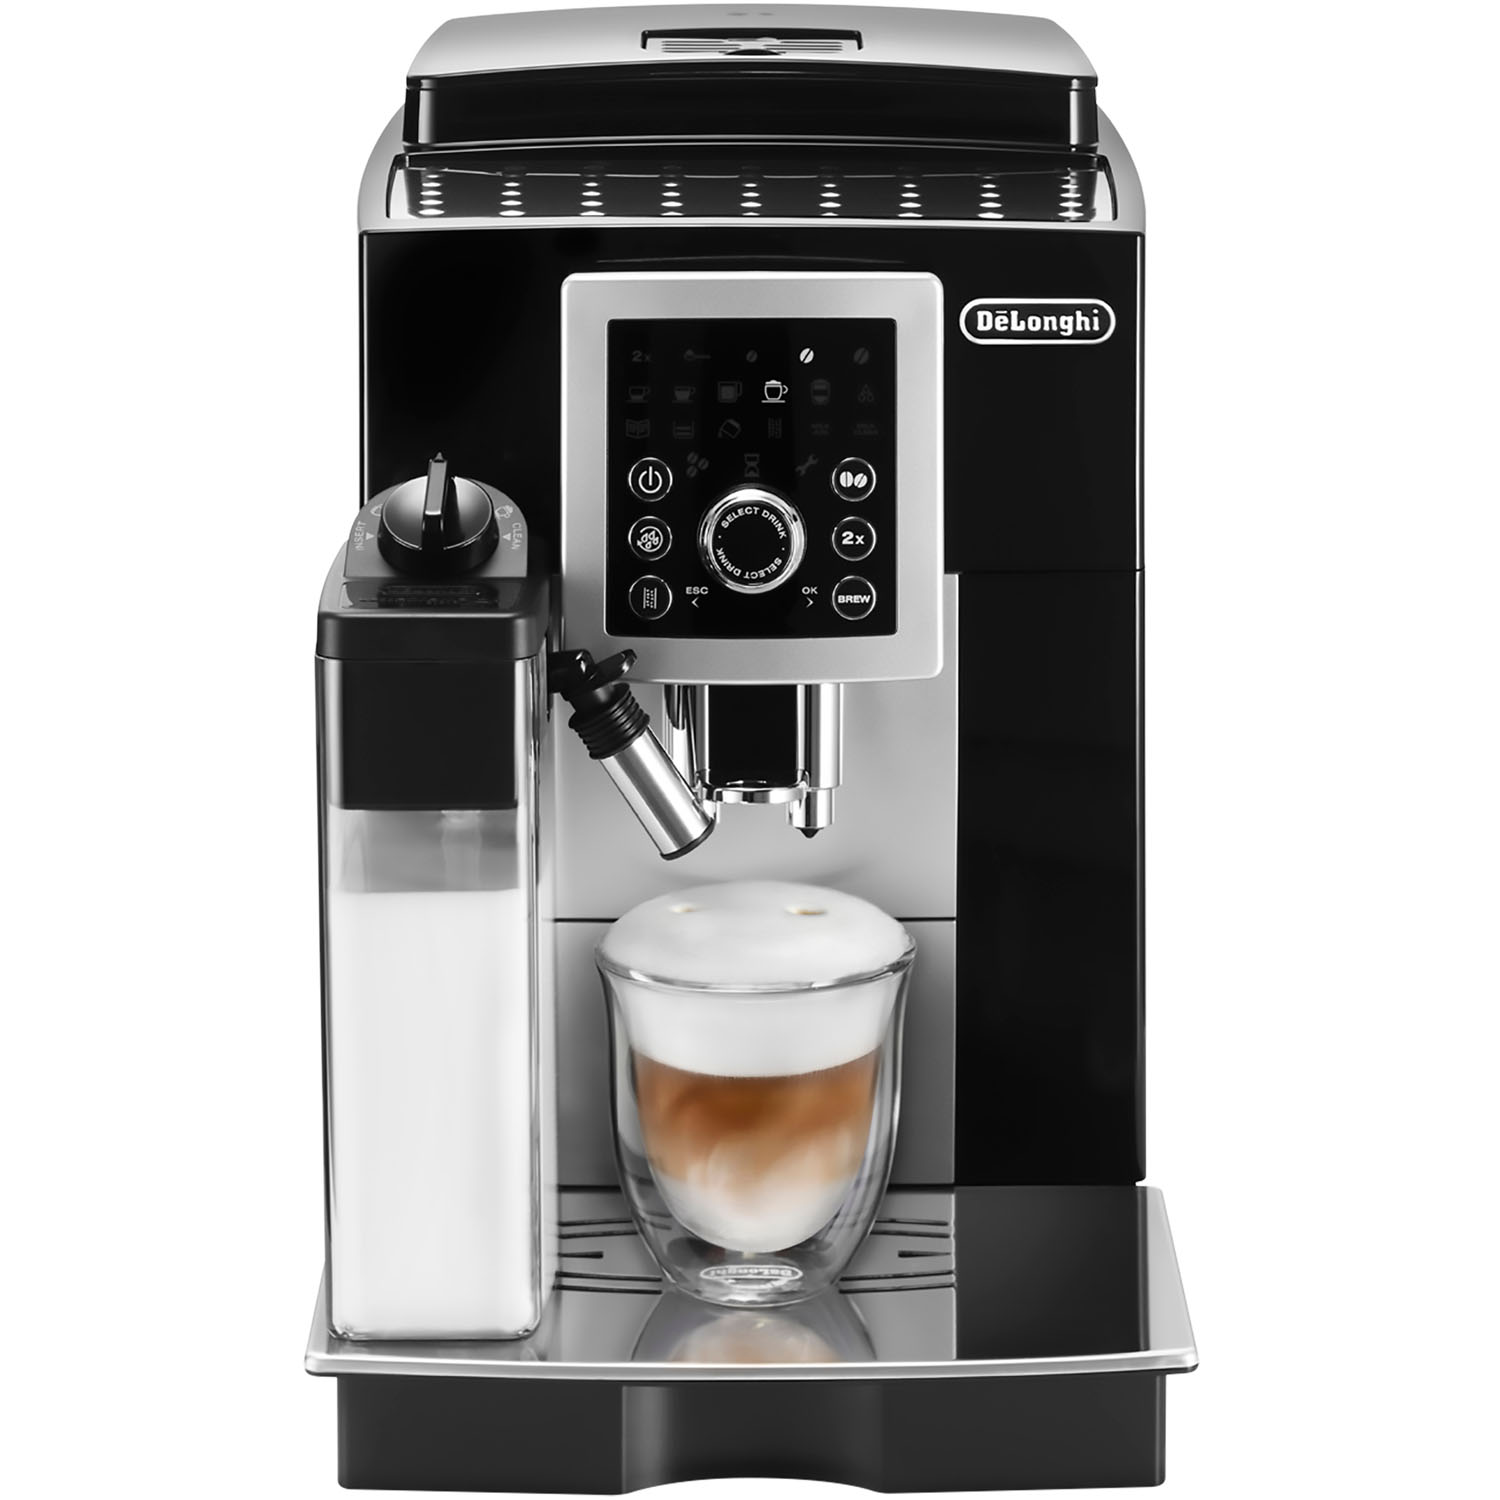 DeLonghi Magnifica S Smart Fully Automatic Espresso, Cappuccino and Coffee Machine with One Touch LatteCrema System